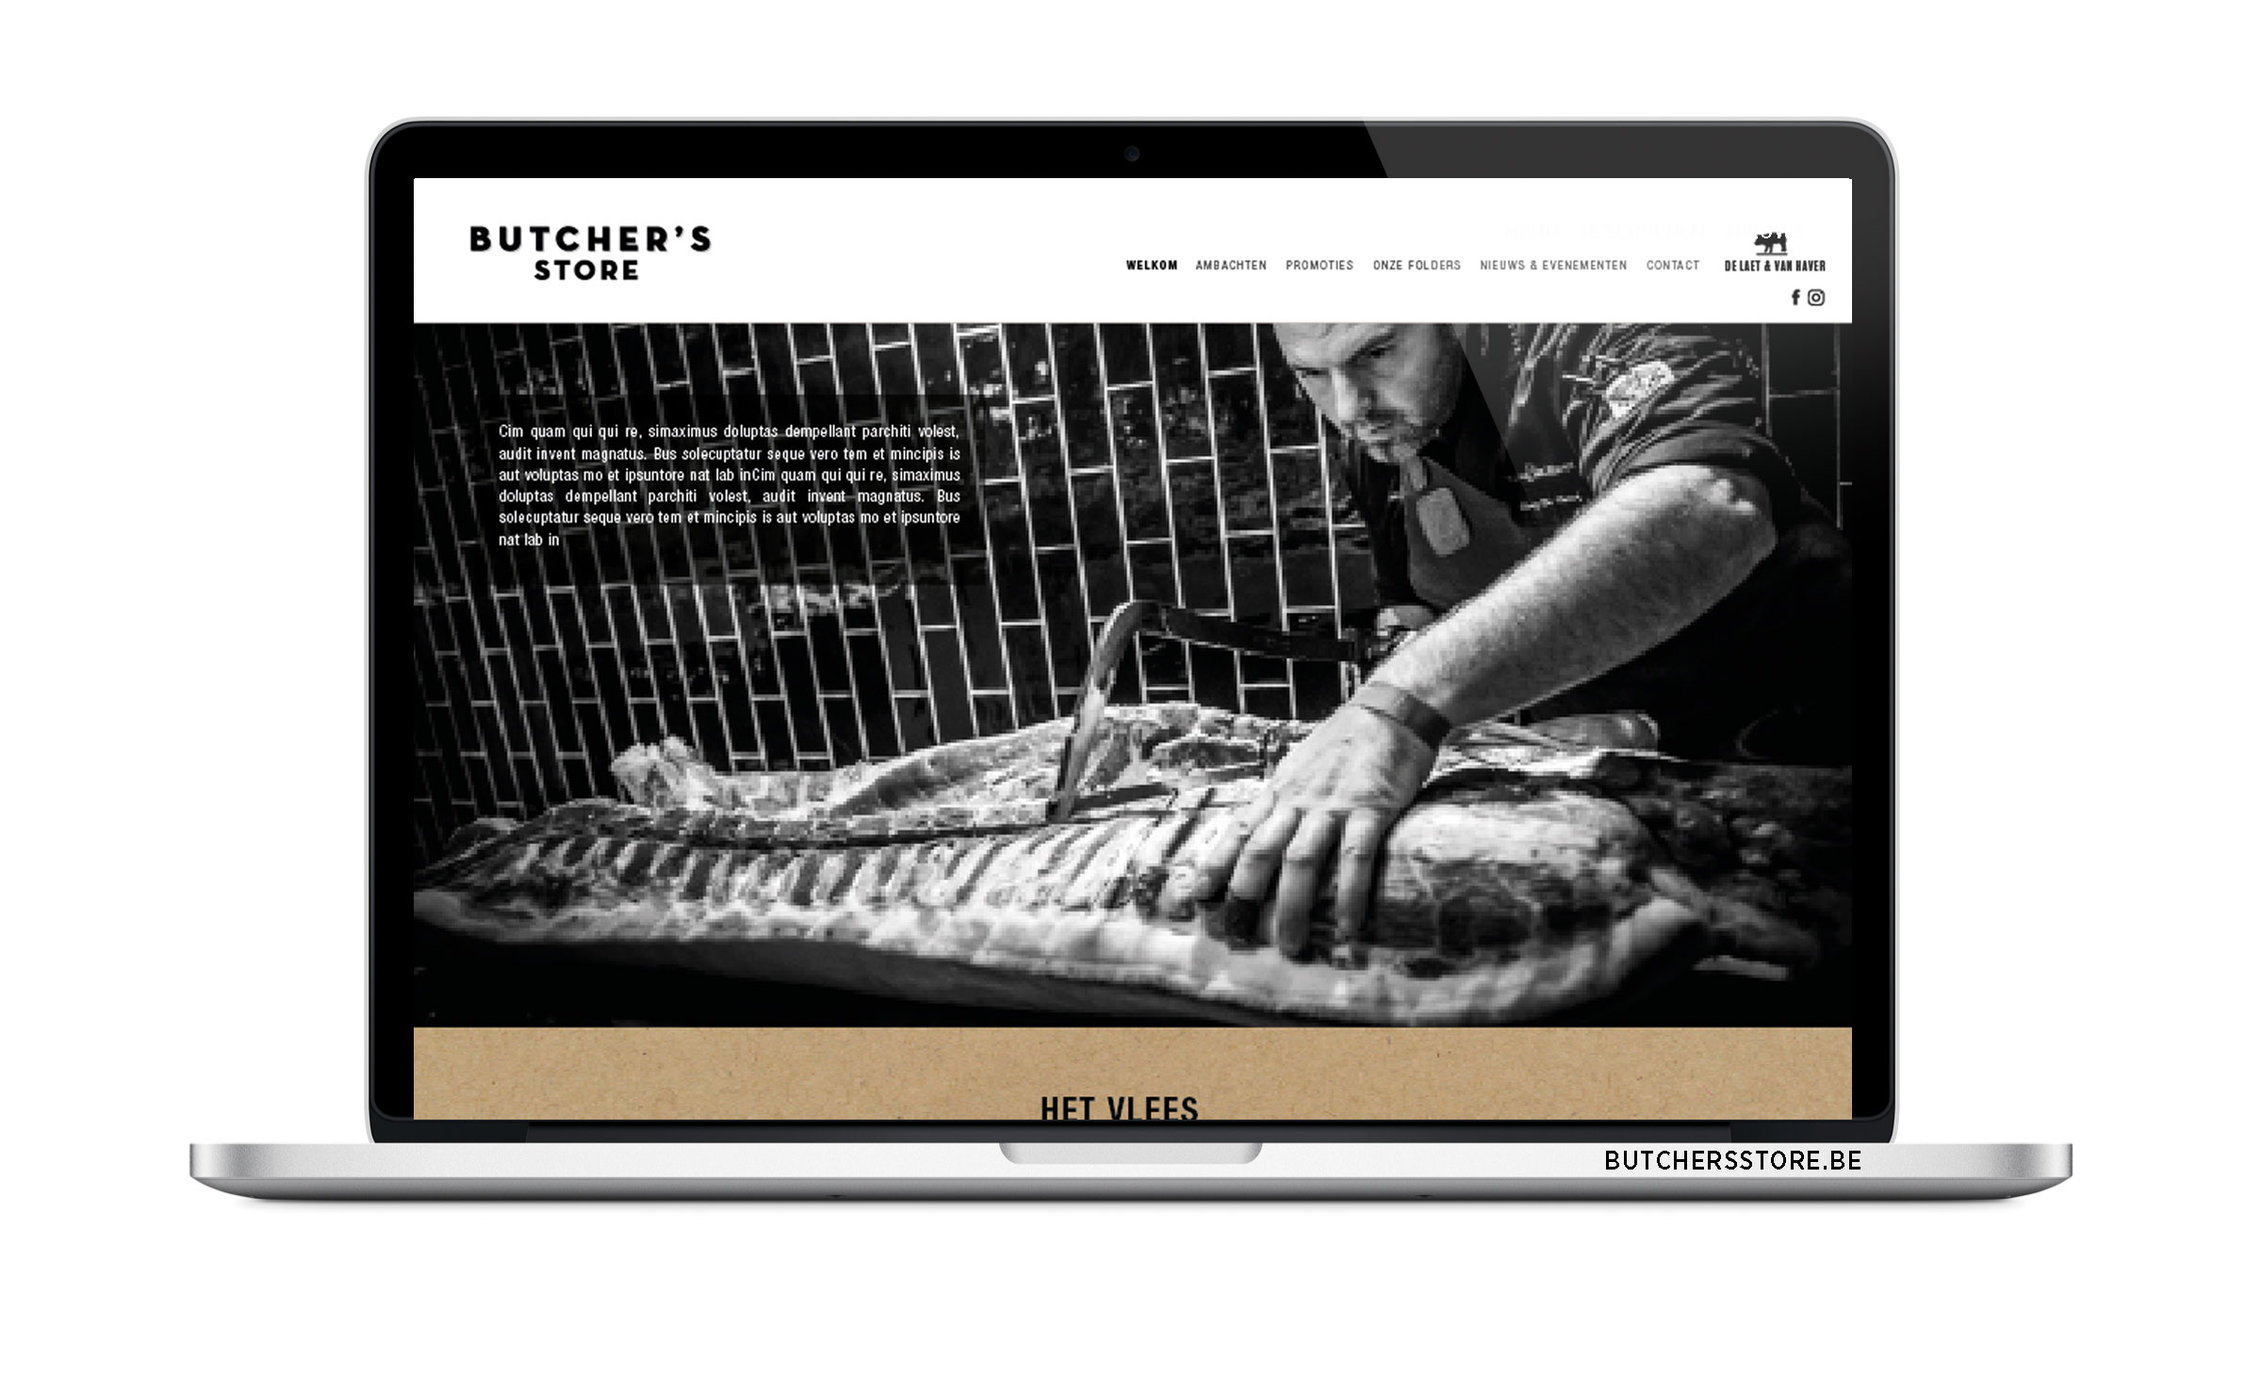 BUTCHER'S STORE - website ism Kaplus